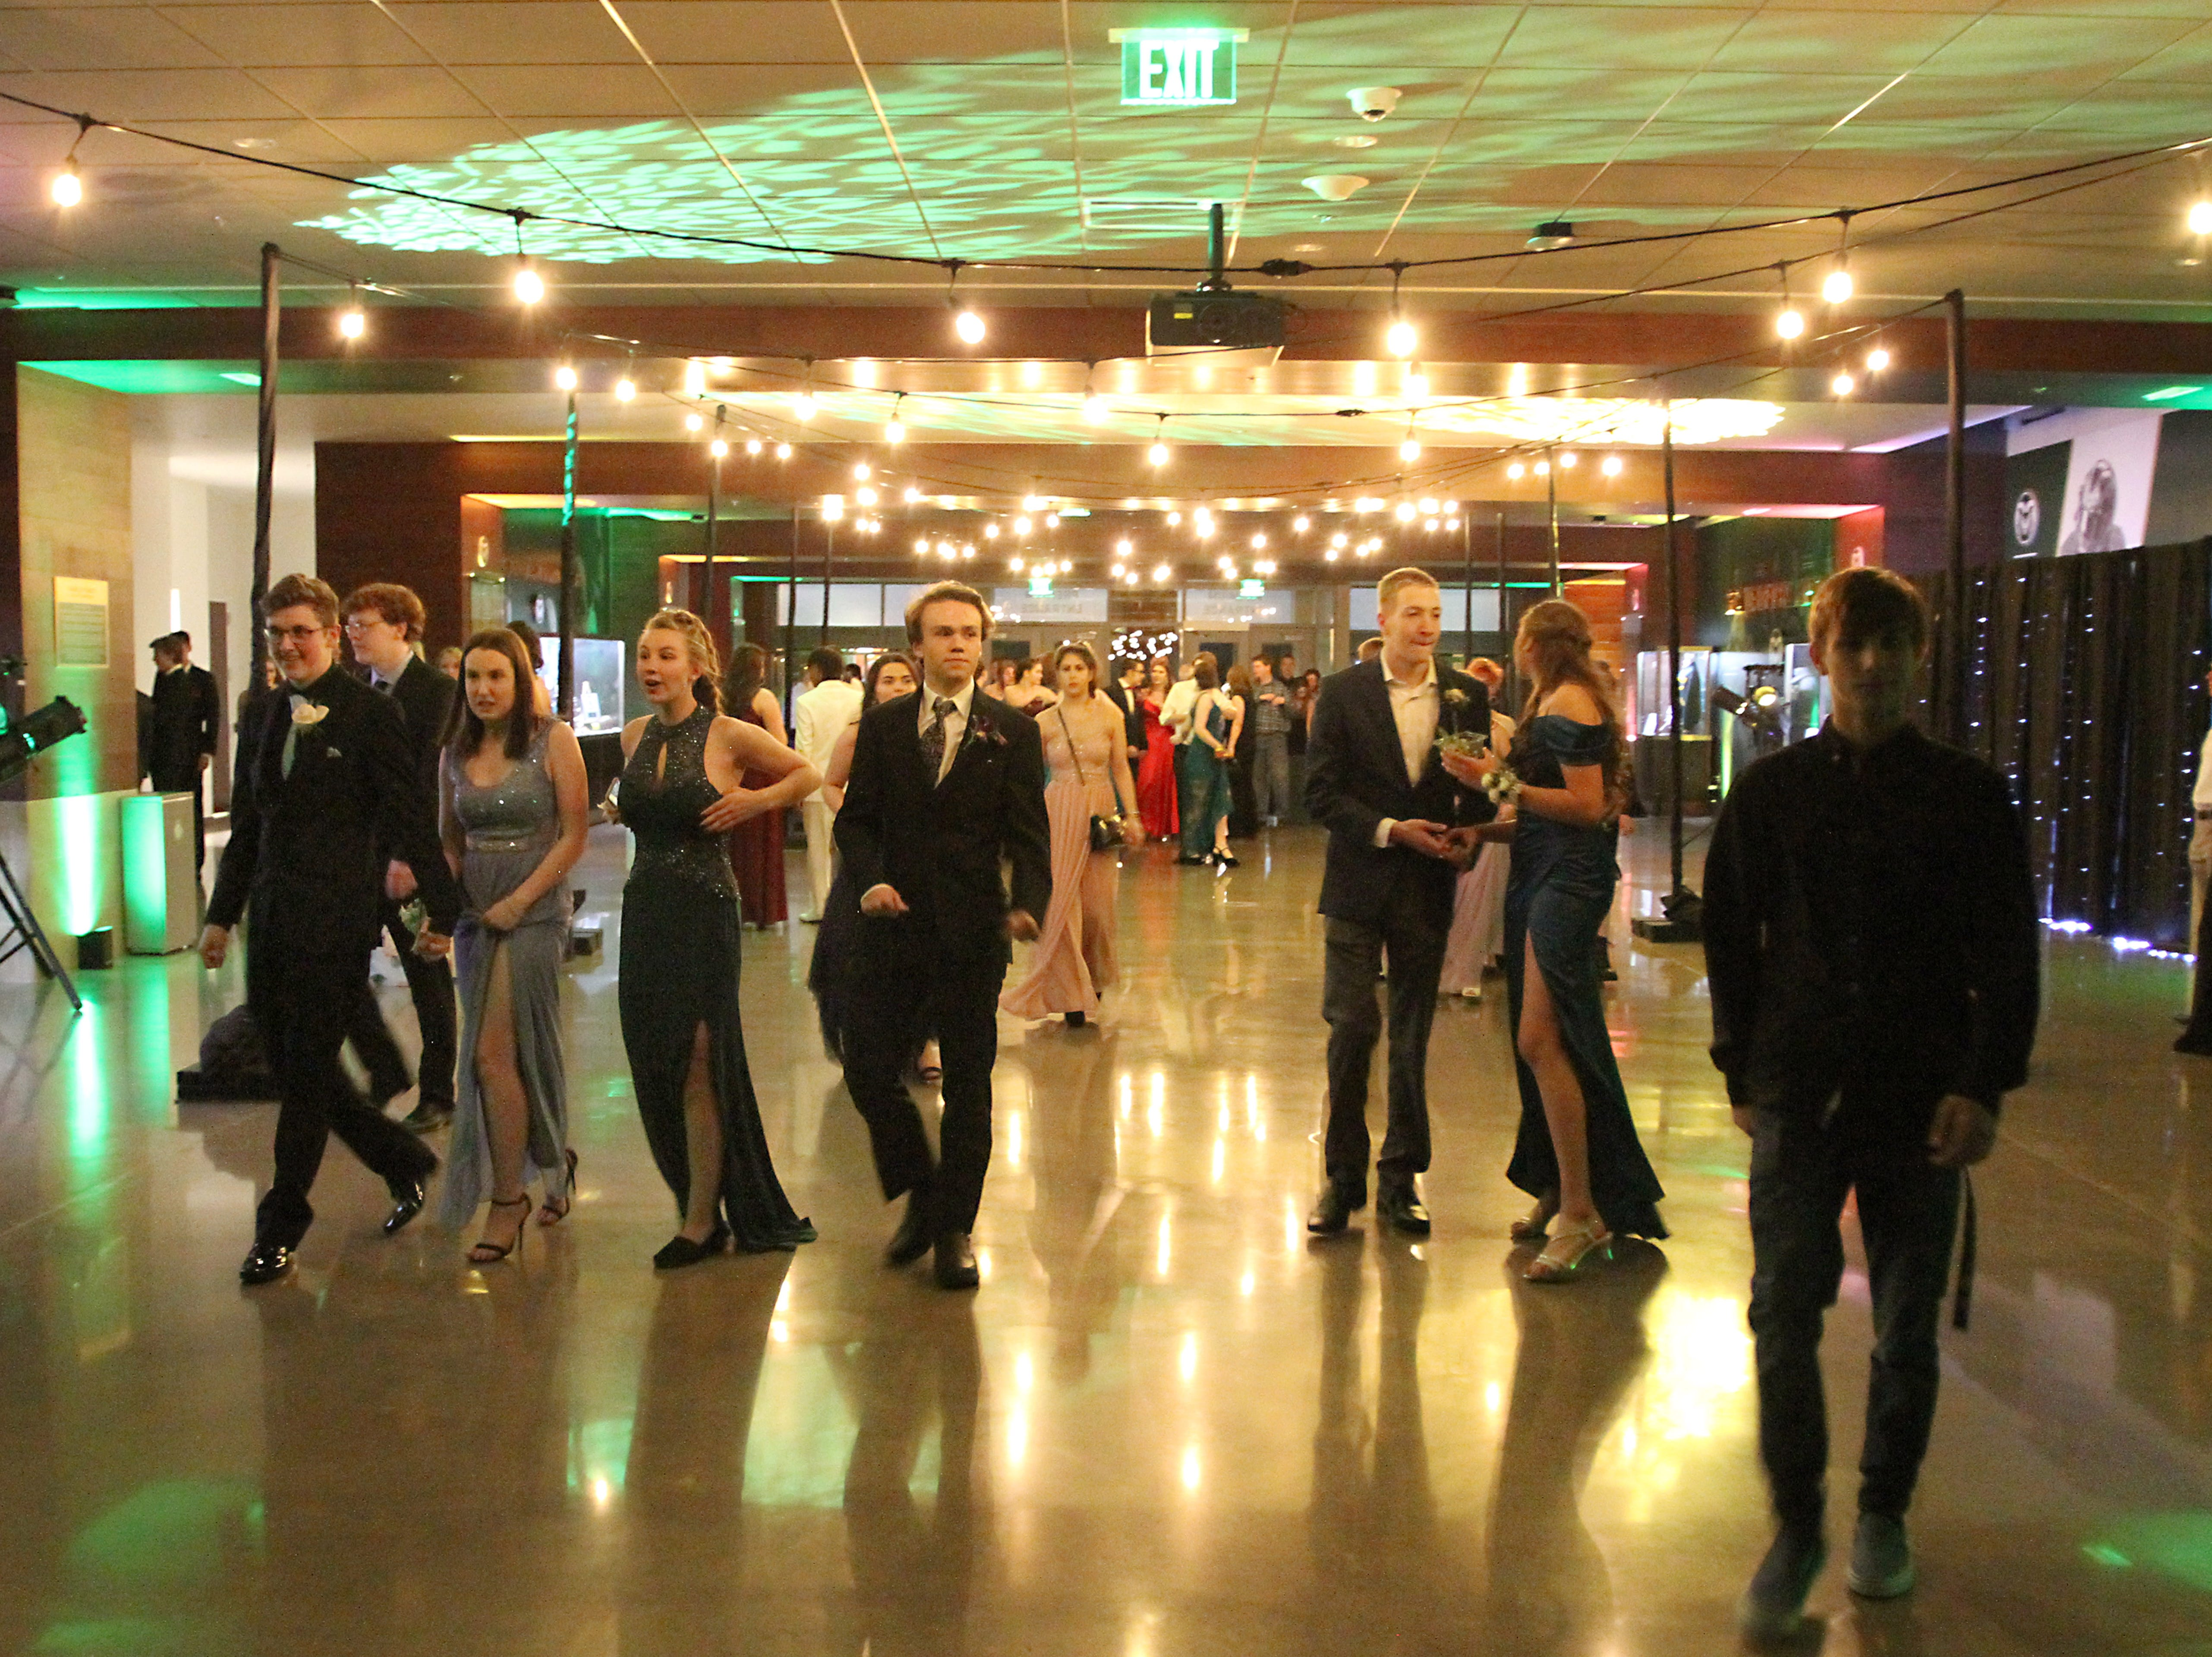 Joel Blocker / For the ColoradoanFort Collins High School students fill the breezeway at Canvas Stadium as they begin to show up for the schoolÕs prom Saturday evening.